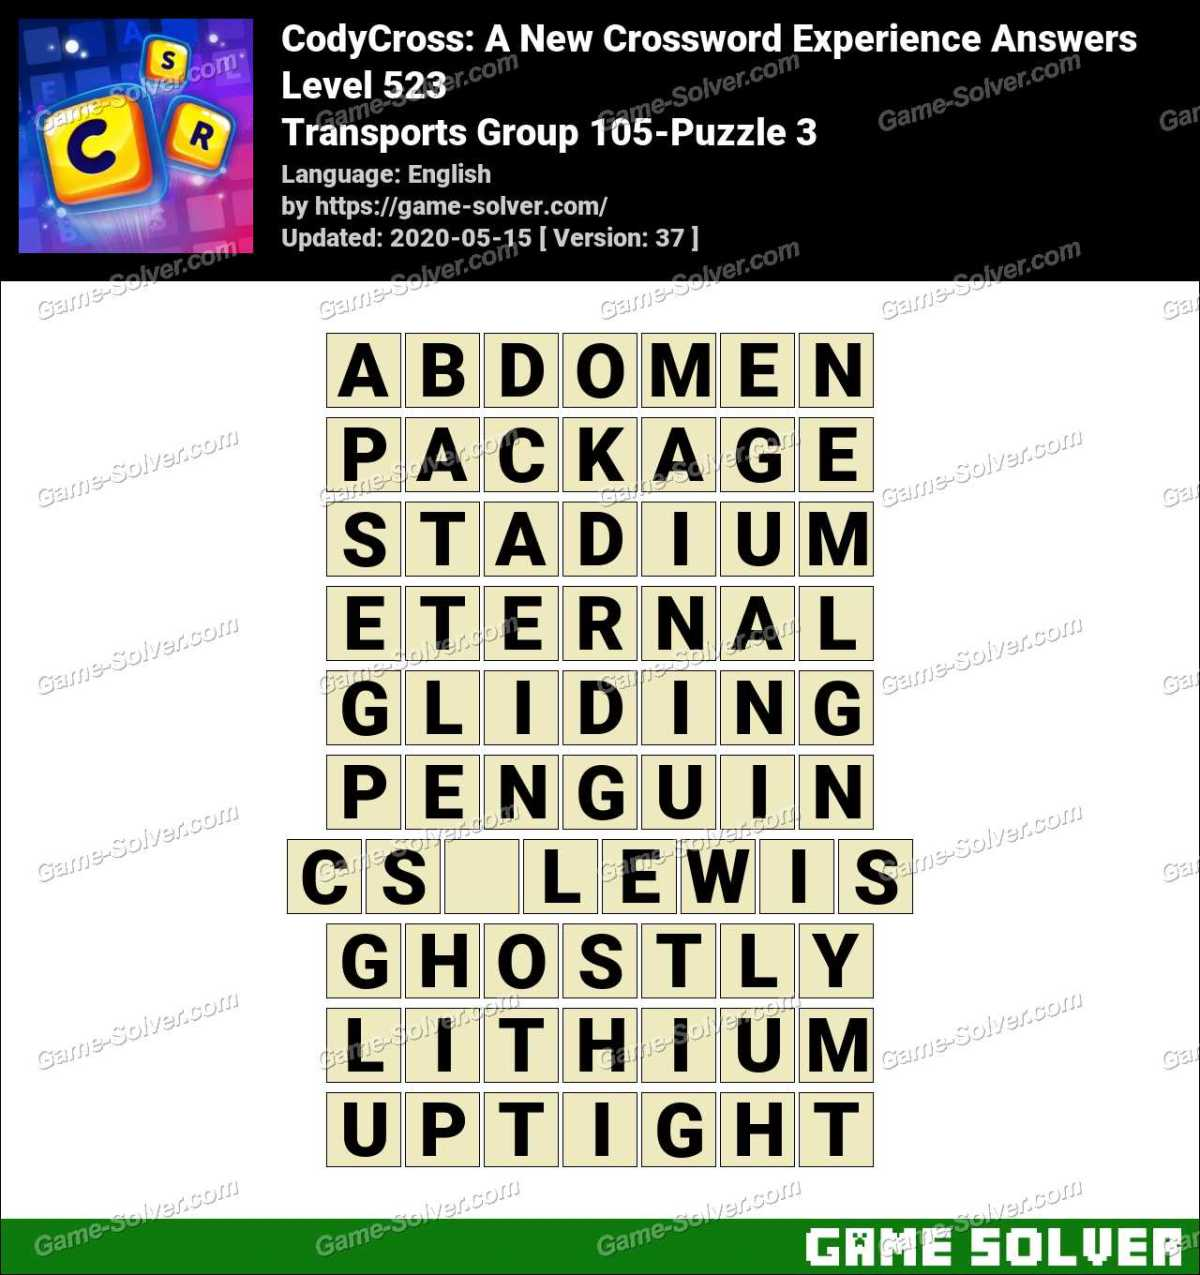 CodyCross Transports Group 105-Puzzle 3 Answers